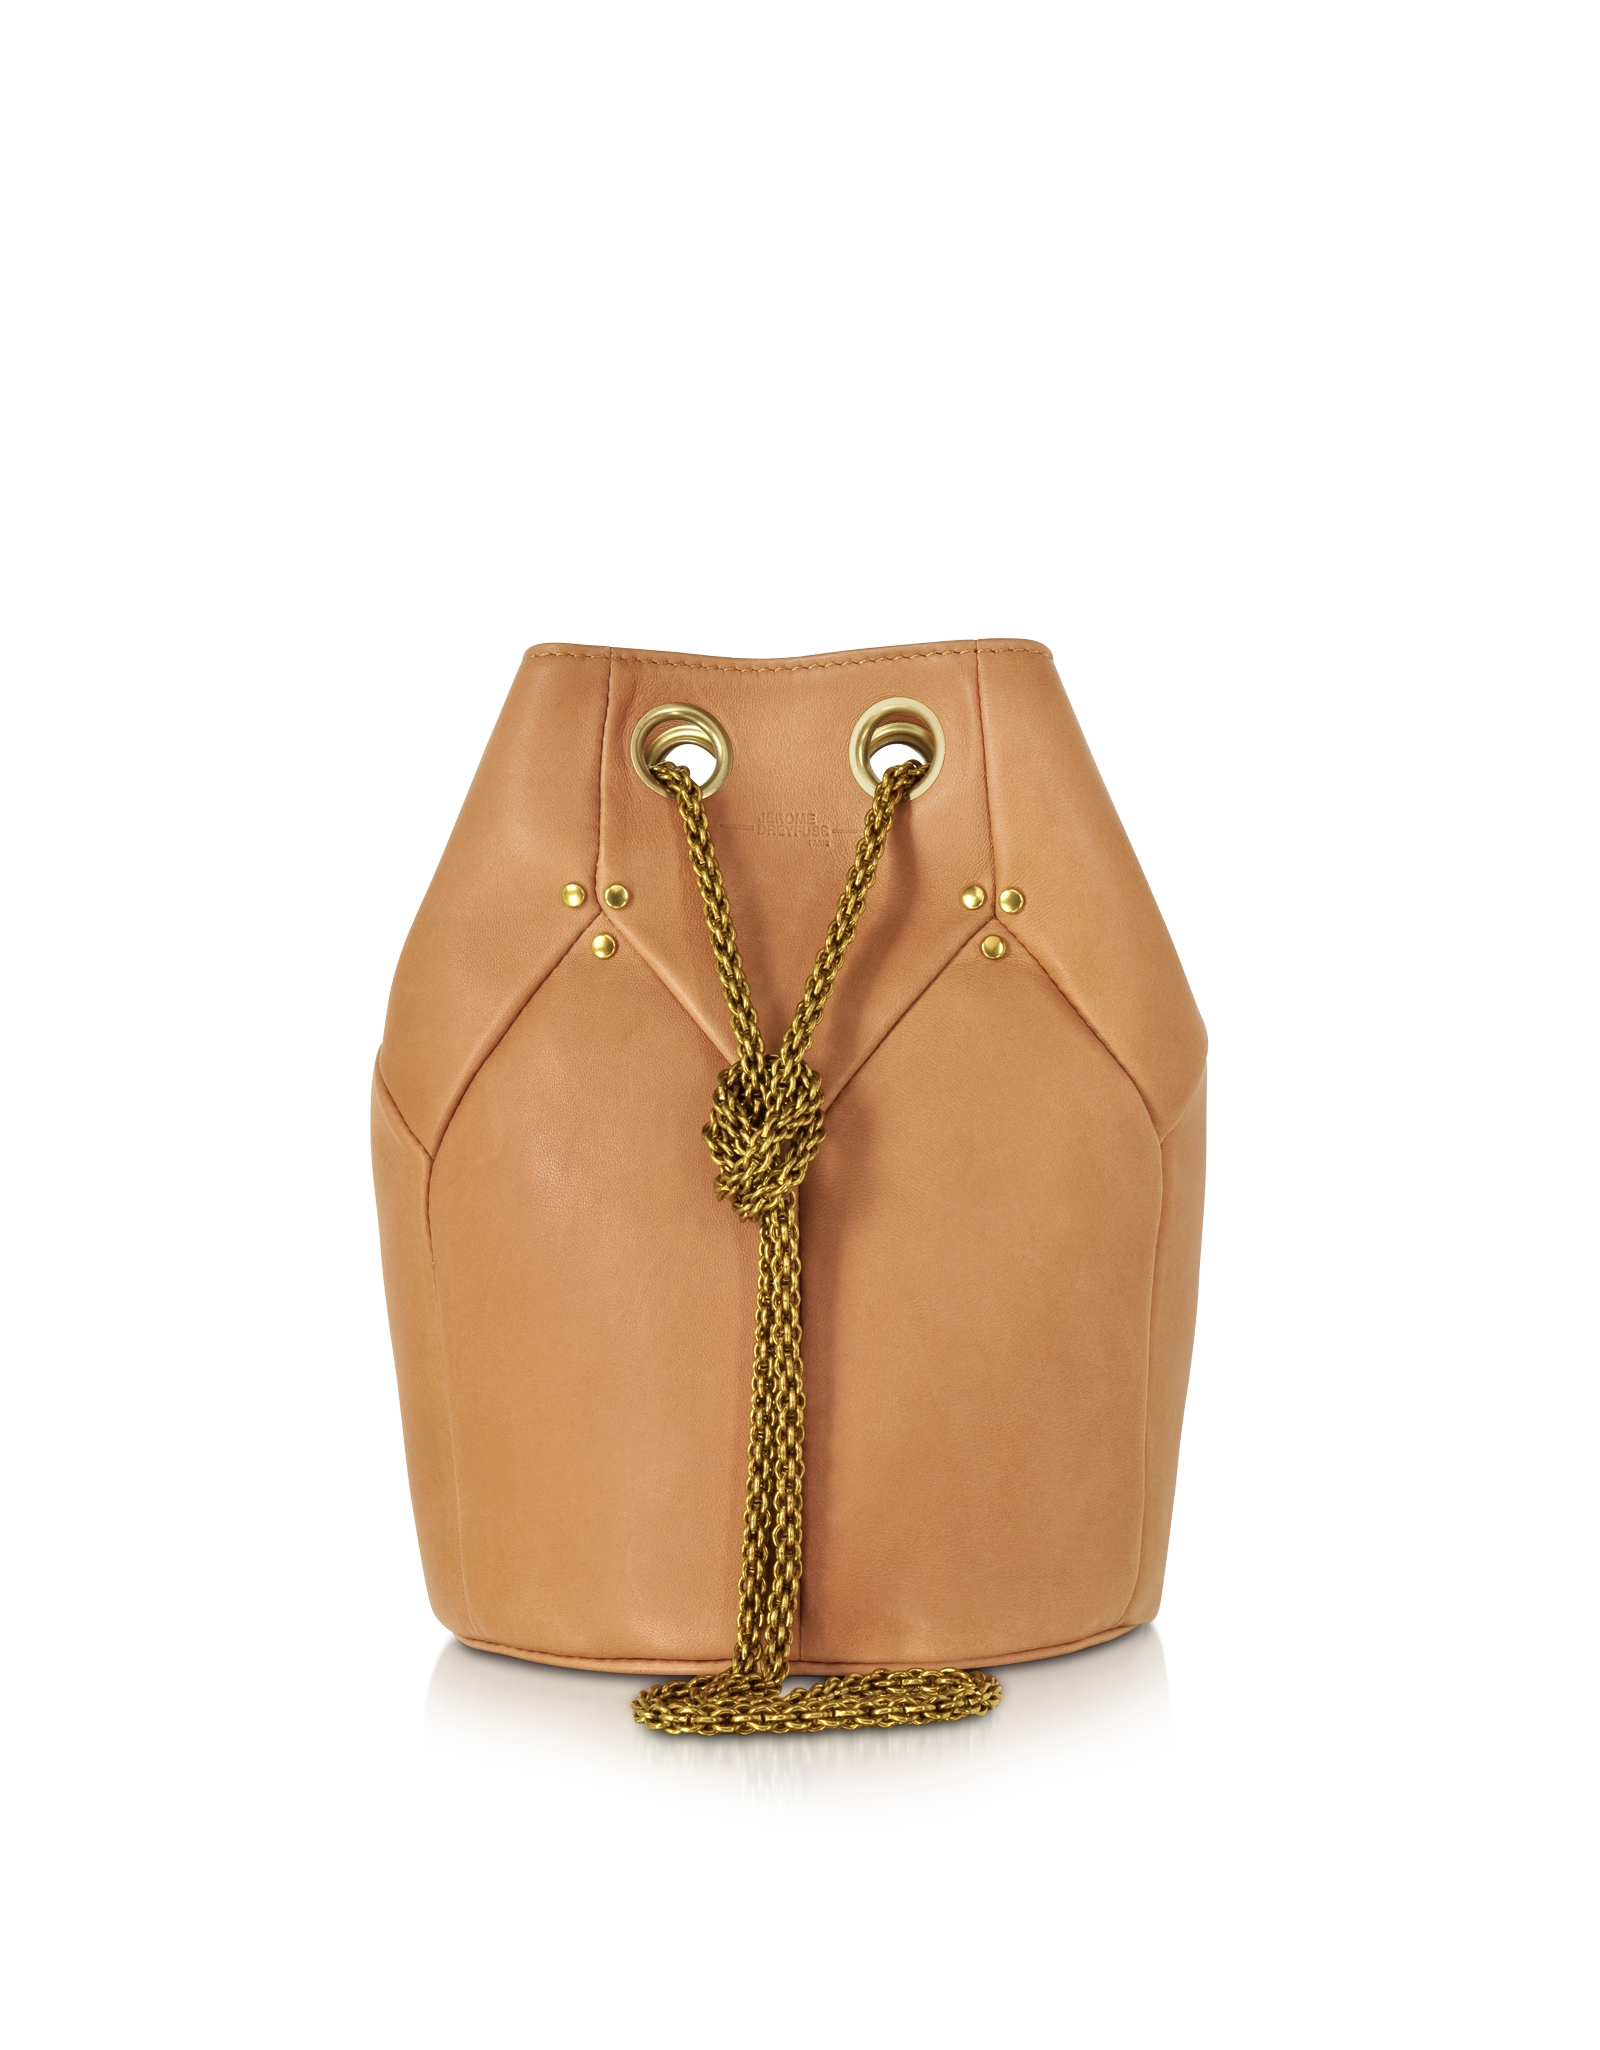 555741782e1a Jérôme Dreyfuss Popeye Nude Leather Bucket Bag in Brown - Lyst